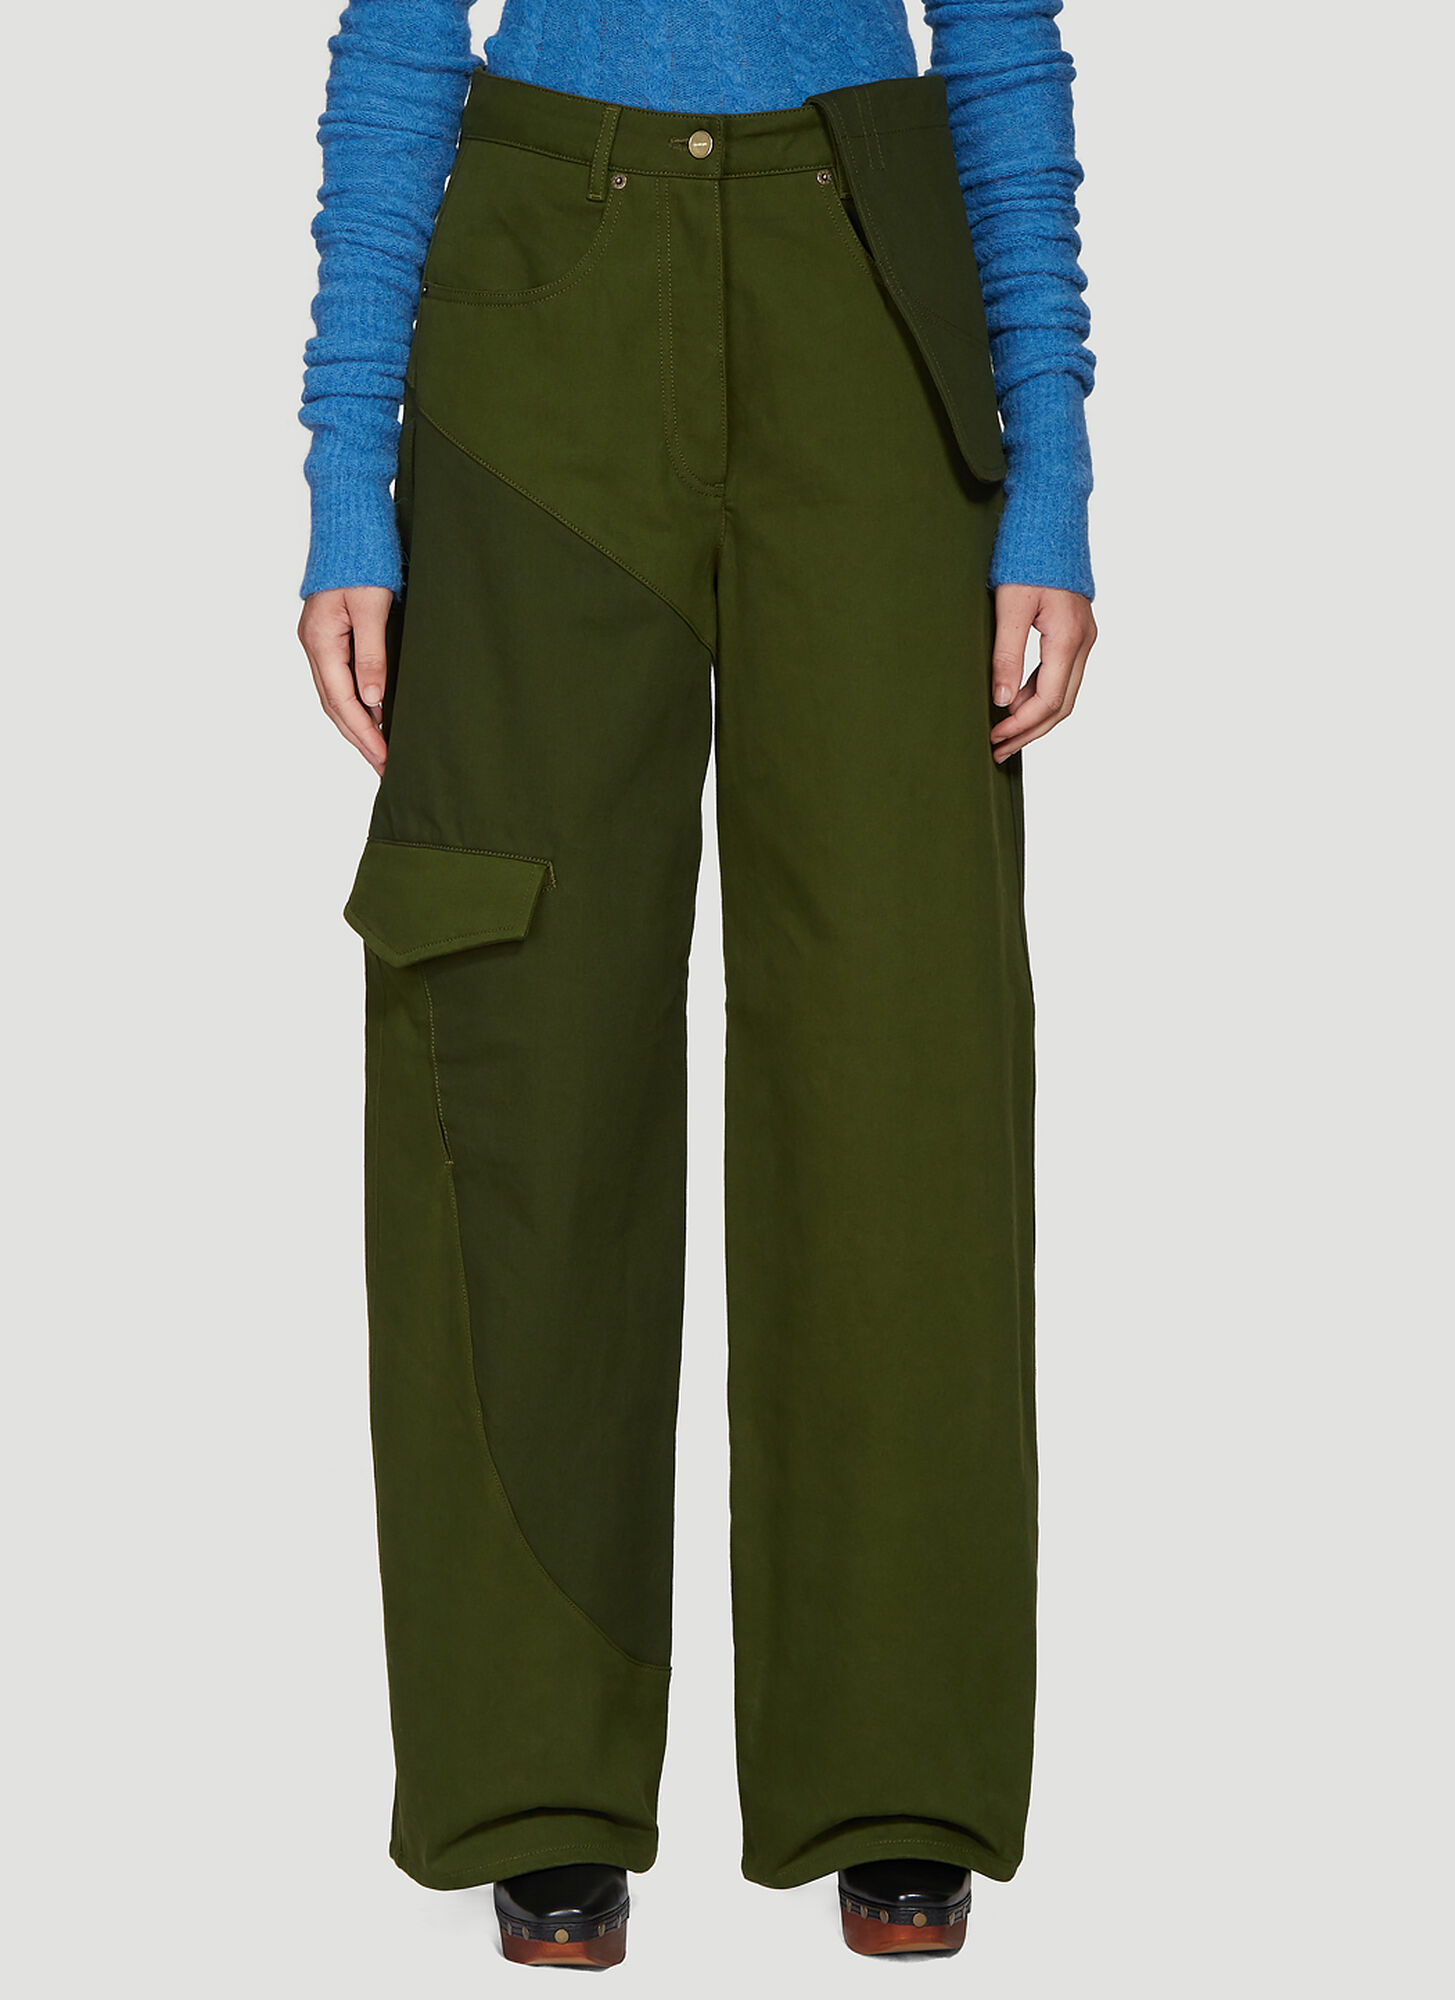 Jacquemus Le Jean De Nimes Pants in Green